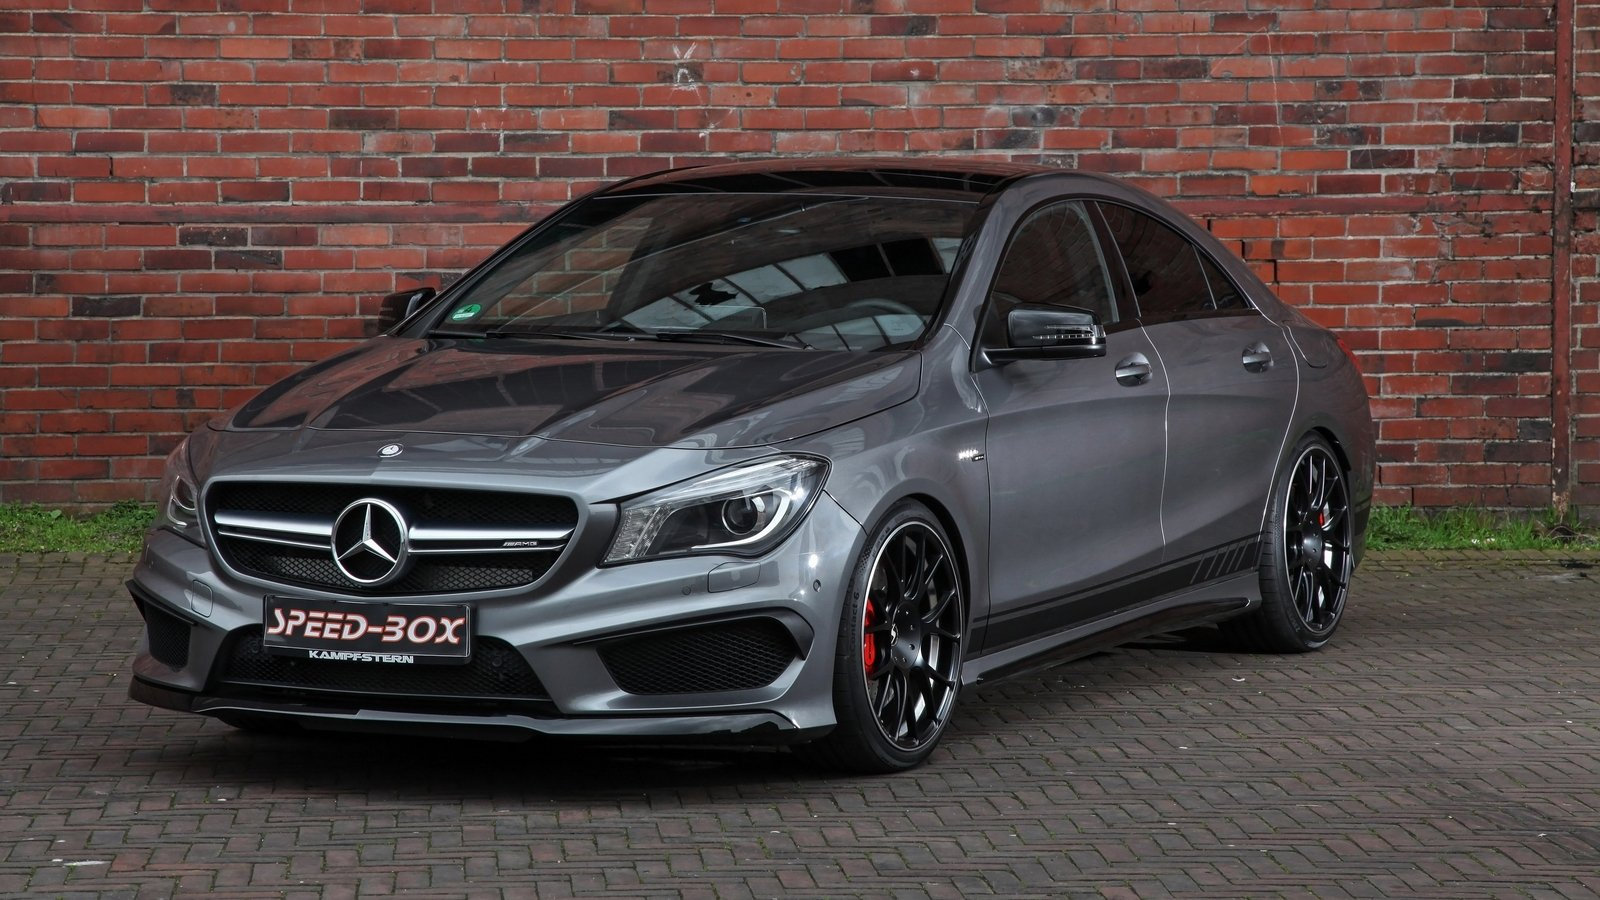 2016 mercedes amg cla45 by schmidt revolution review top speed. Black Bedroom Furniture Sets. Home Design Ideas